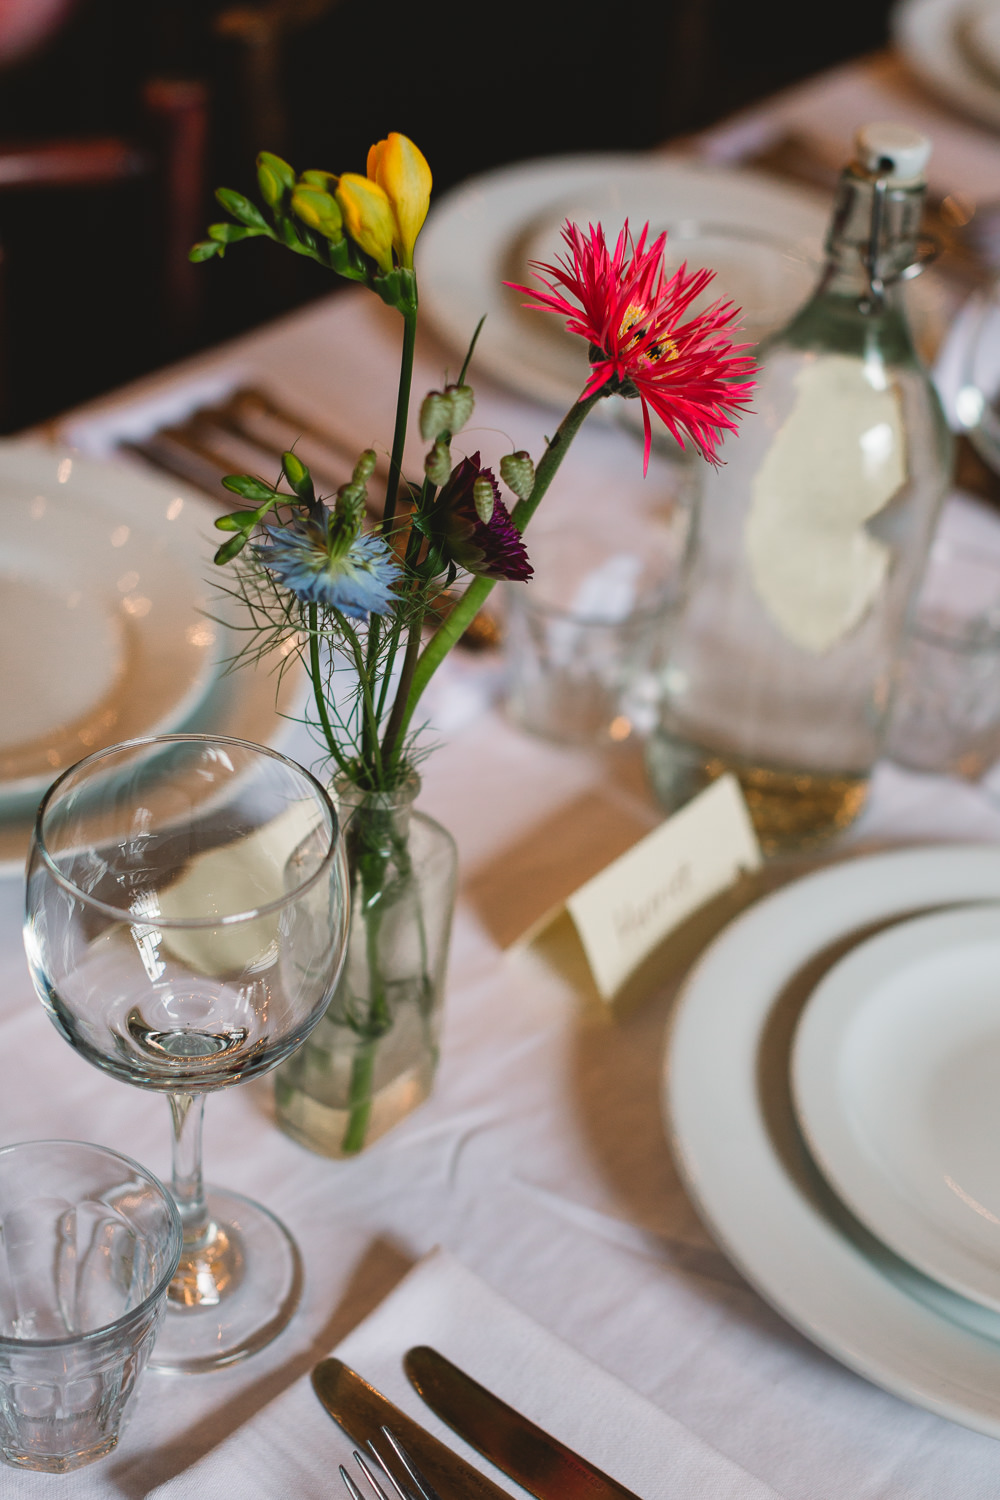 Bottle Bud Vase Flowers Floral Clapton Country Club Wedding Kate Jackson Photography